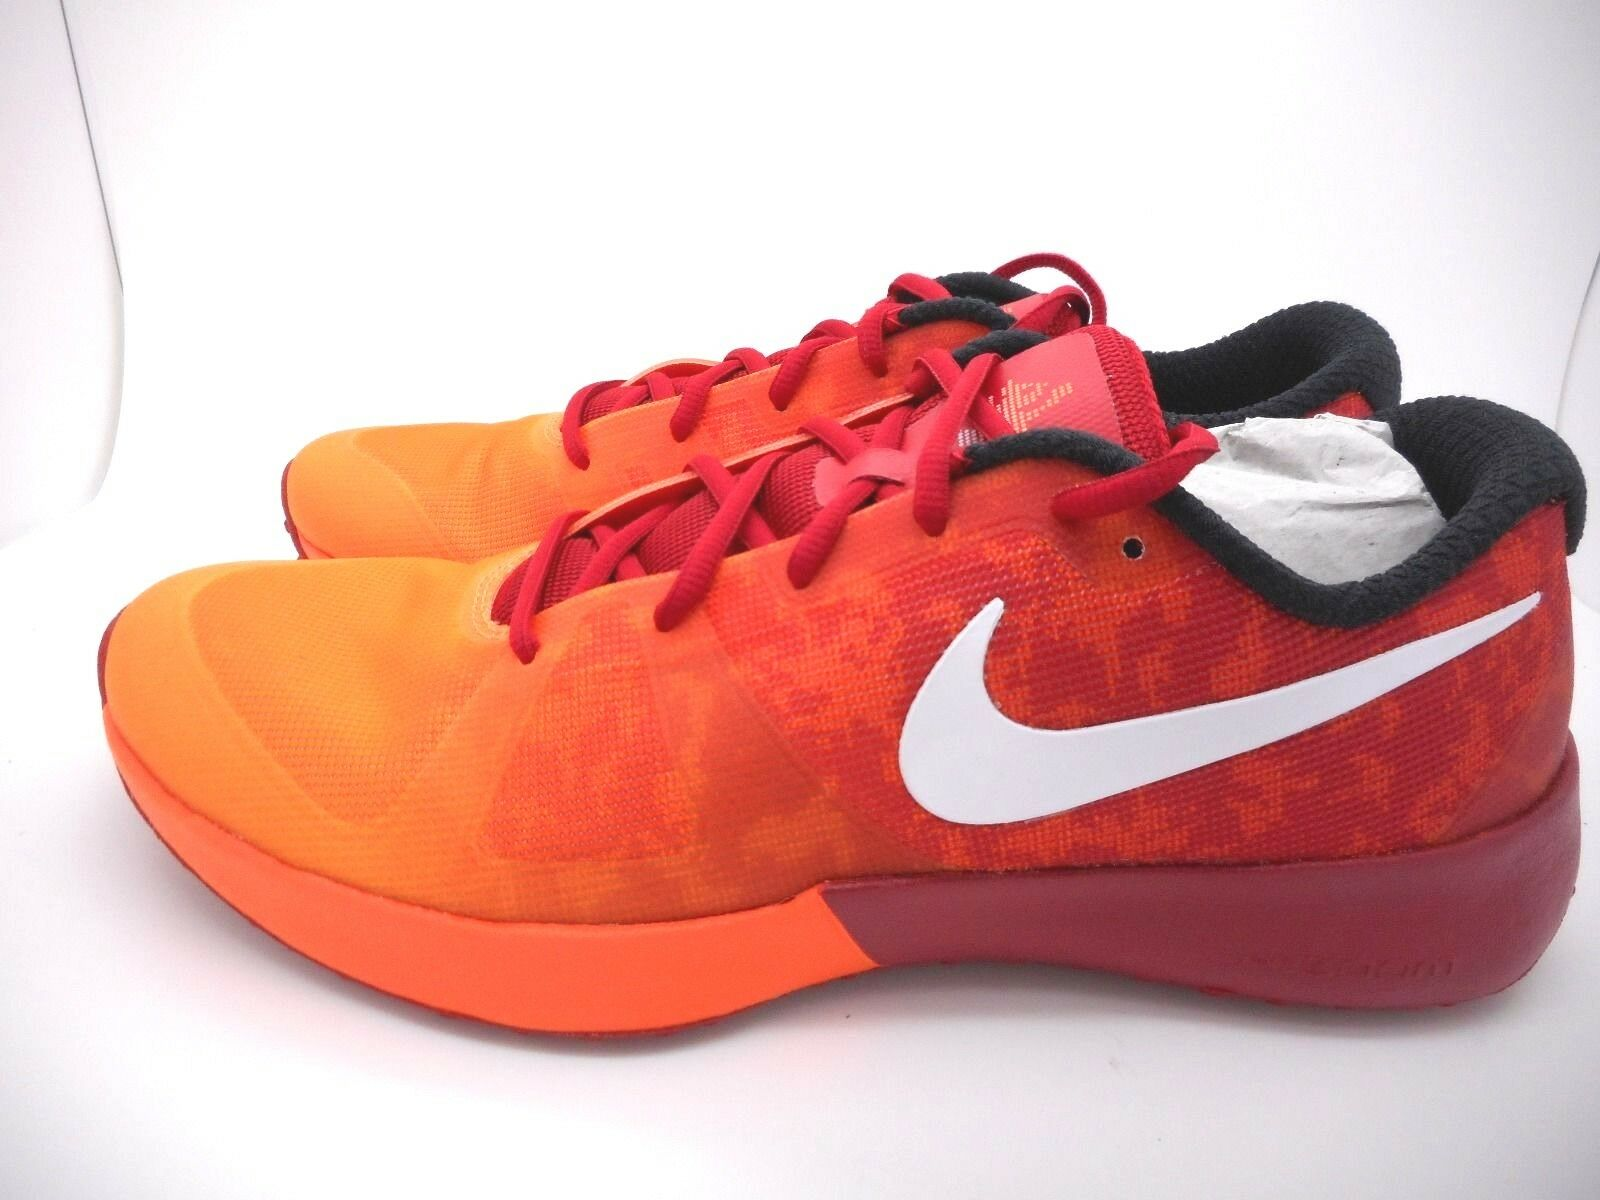 Nike Zoom Speed TR NRG 630851 002 Men's Comfortable New shoes for men and women, limited time discount